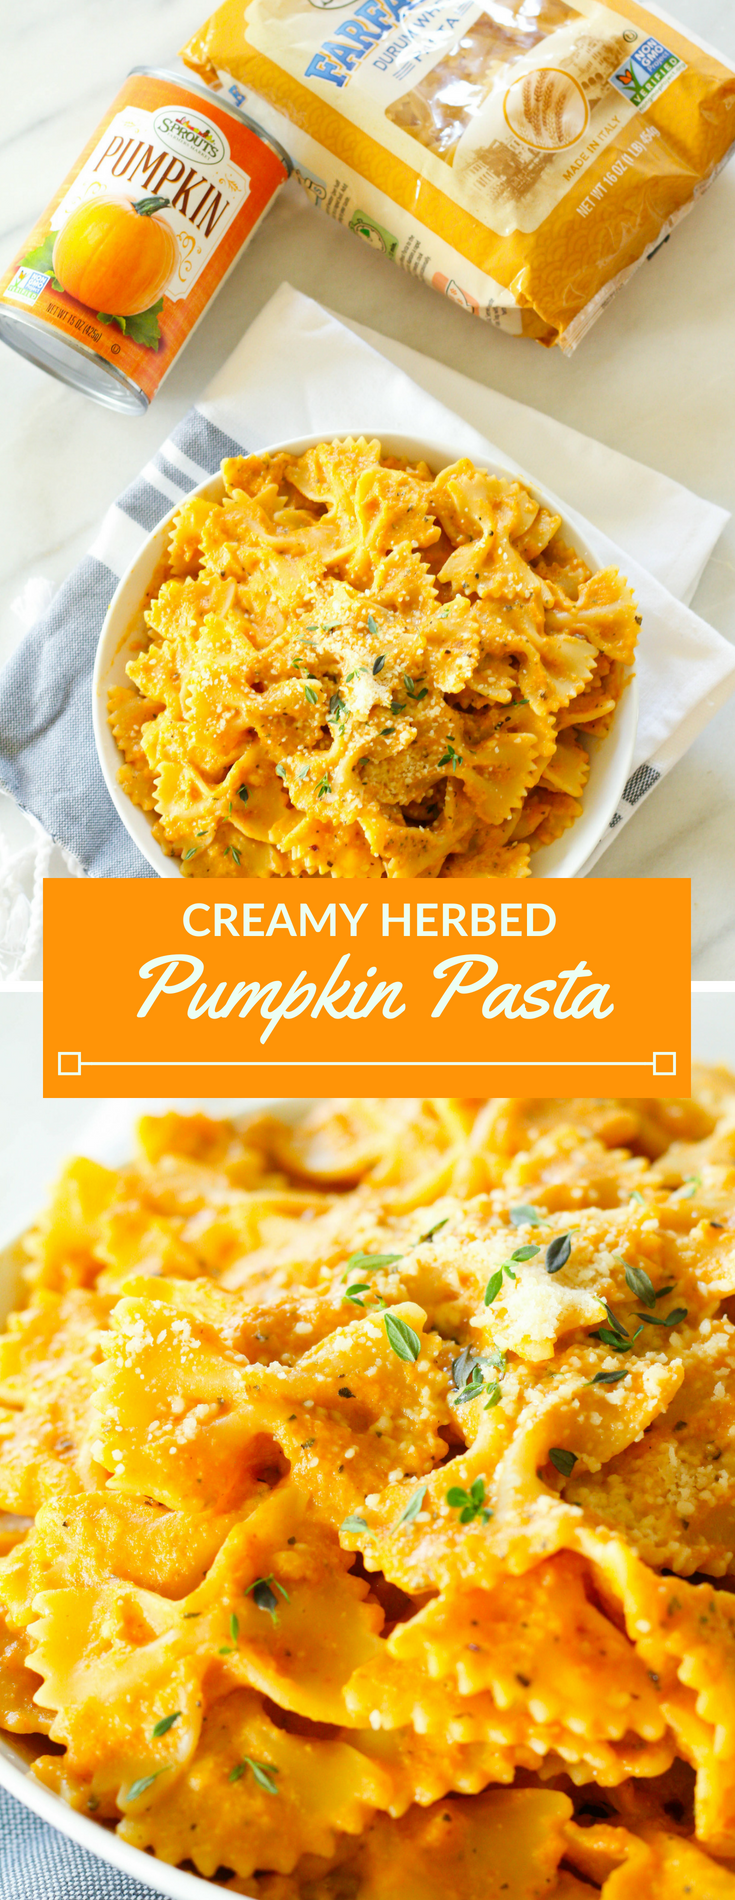 Kick off pumpkin season with a bang with Creamy Herbed Pumpkin Pasta! Tender noodles tossed with a creamy and cheesy pumpkin herb sauce.